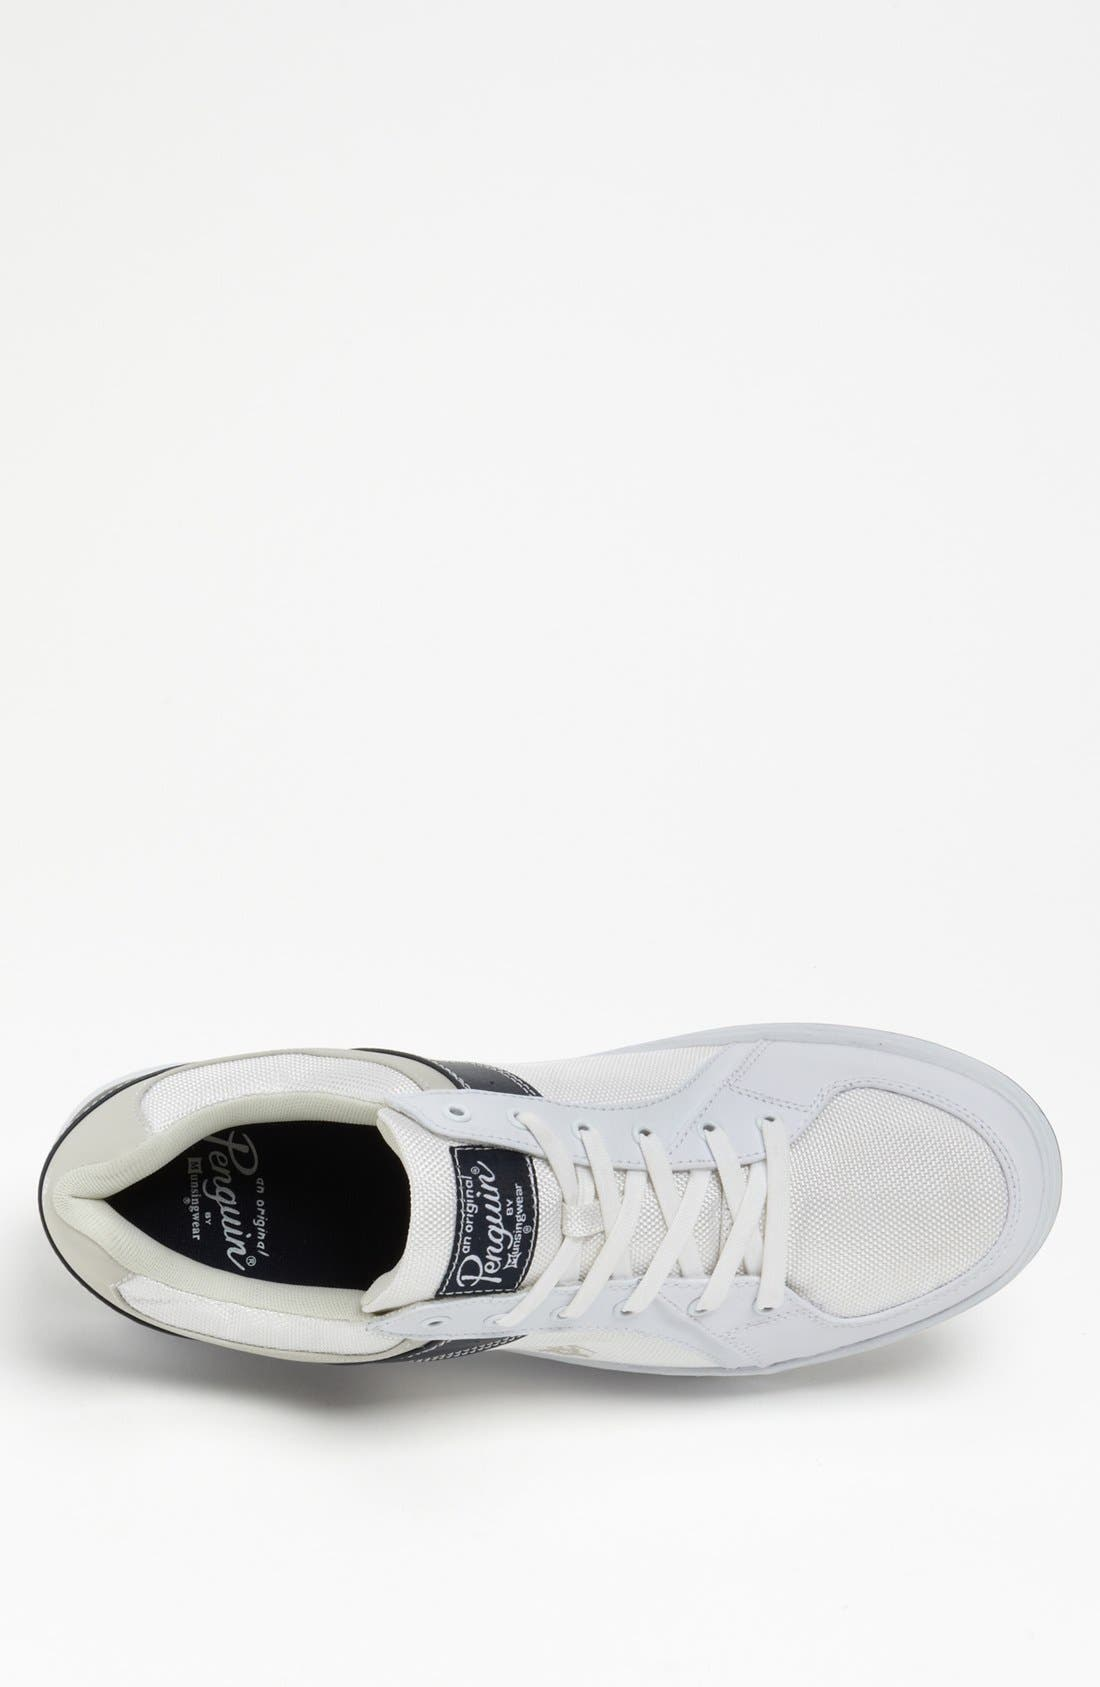 Alternate Image 3  - Original Penguin 'Front' Sneaker